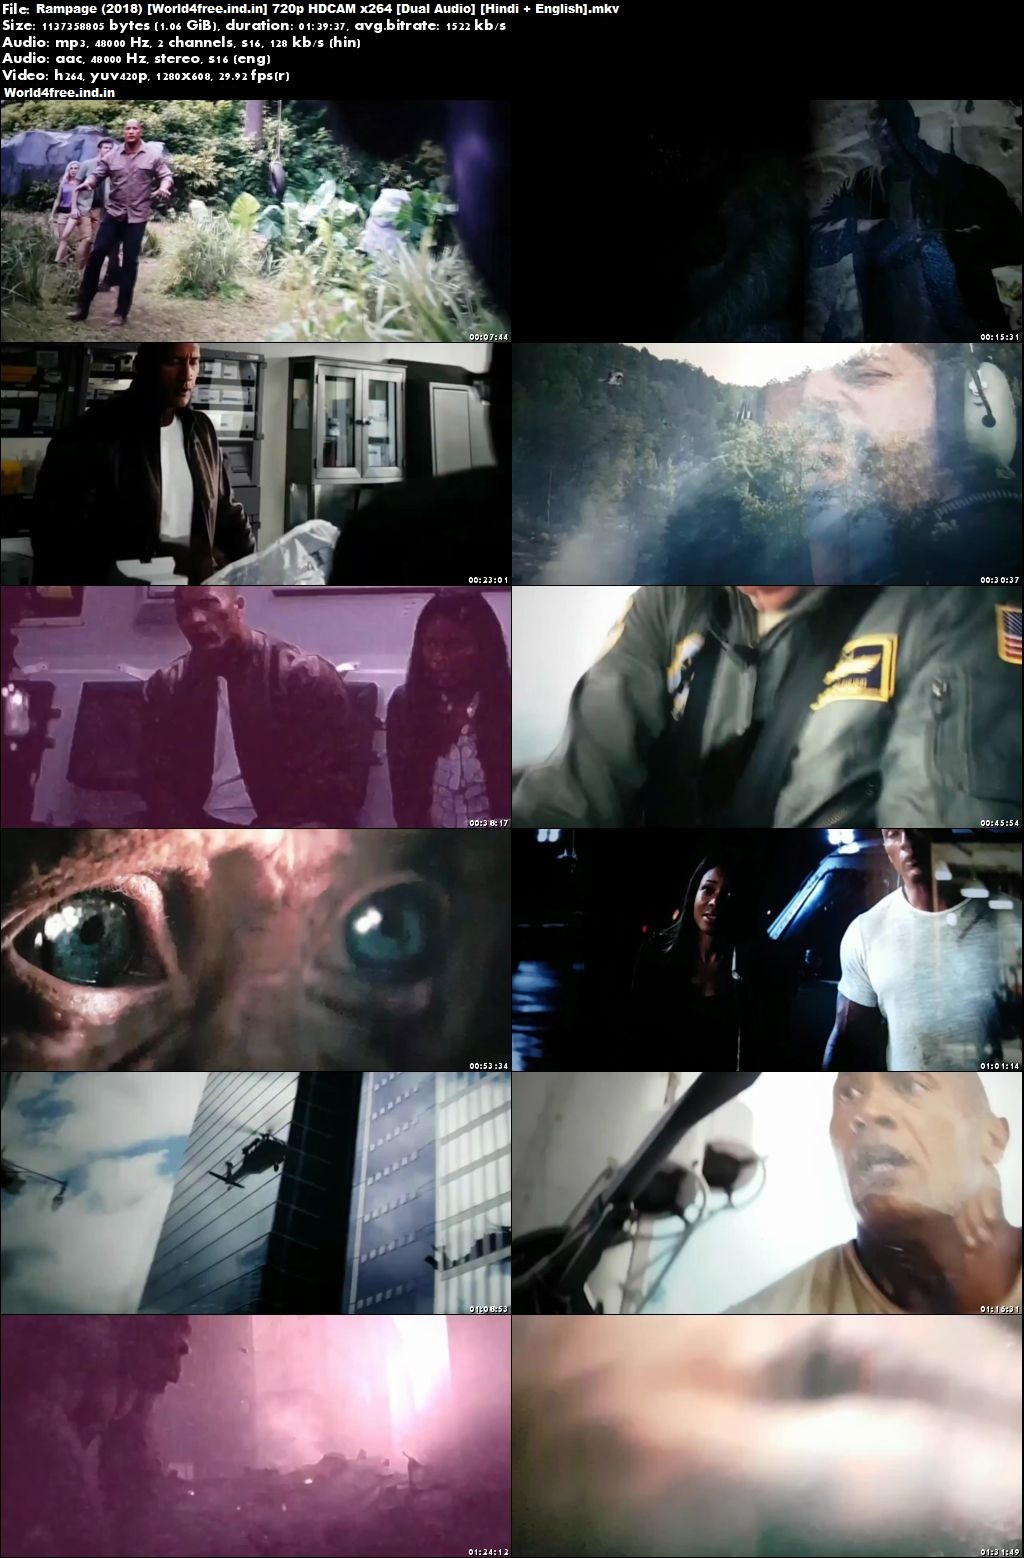 Rampage 2018 world4free.ind.in Full Dual Audio Hindi Movie Download HDCAM